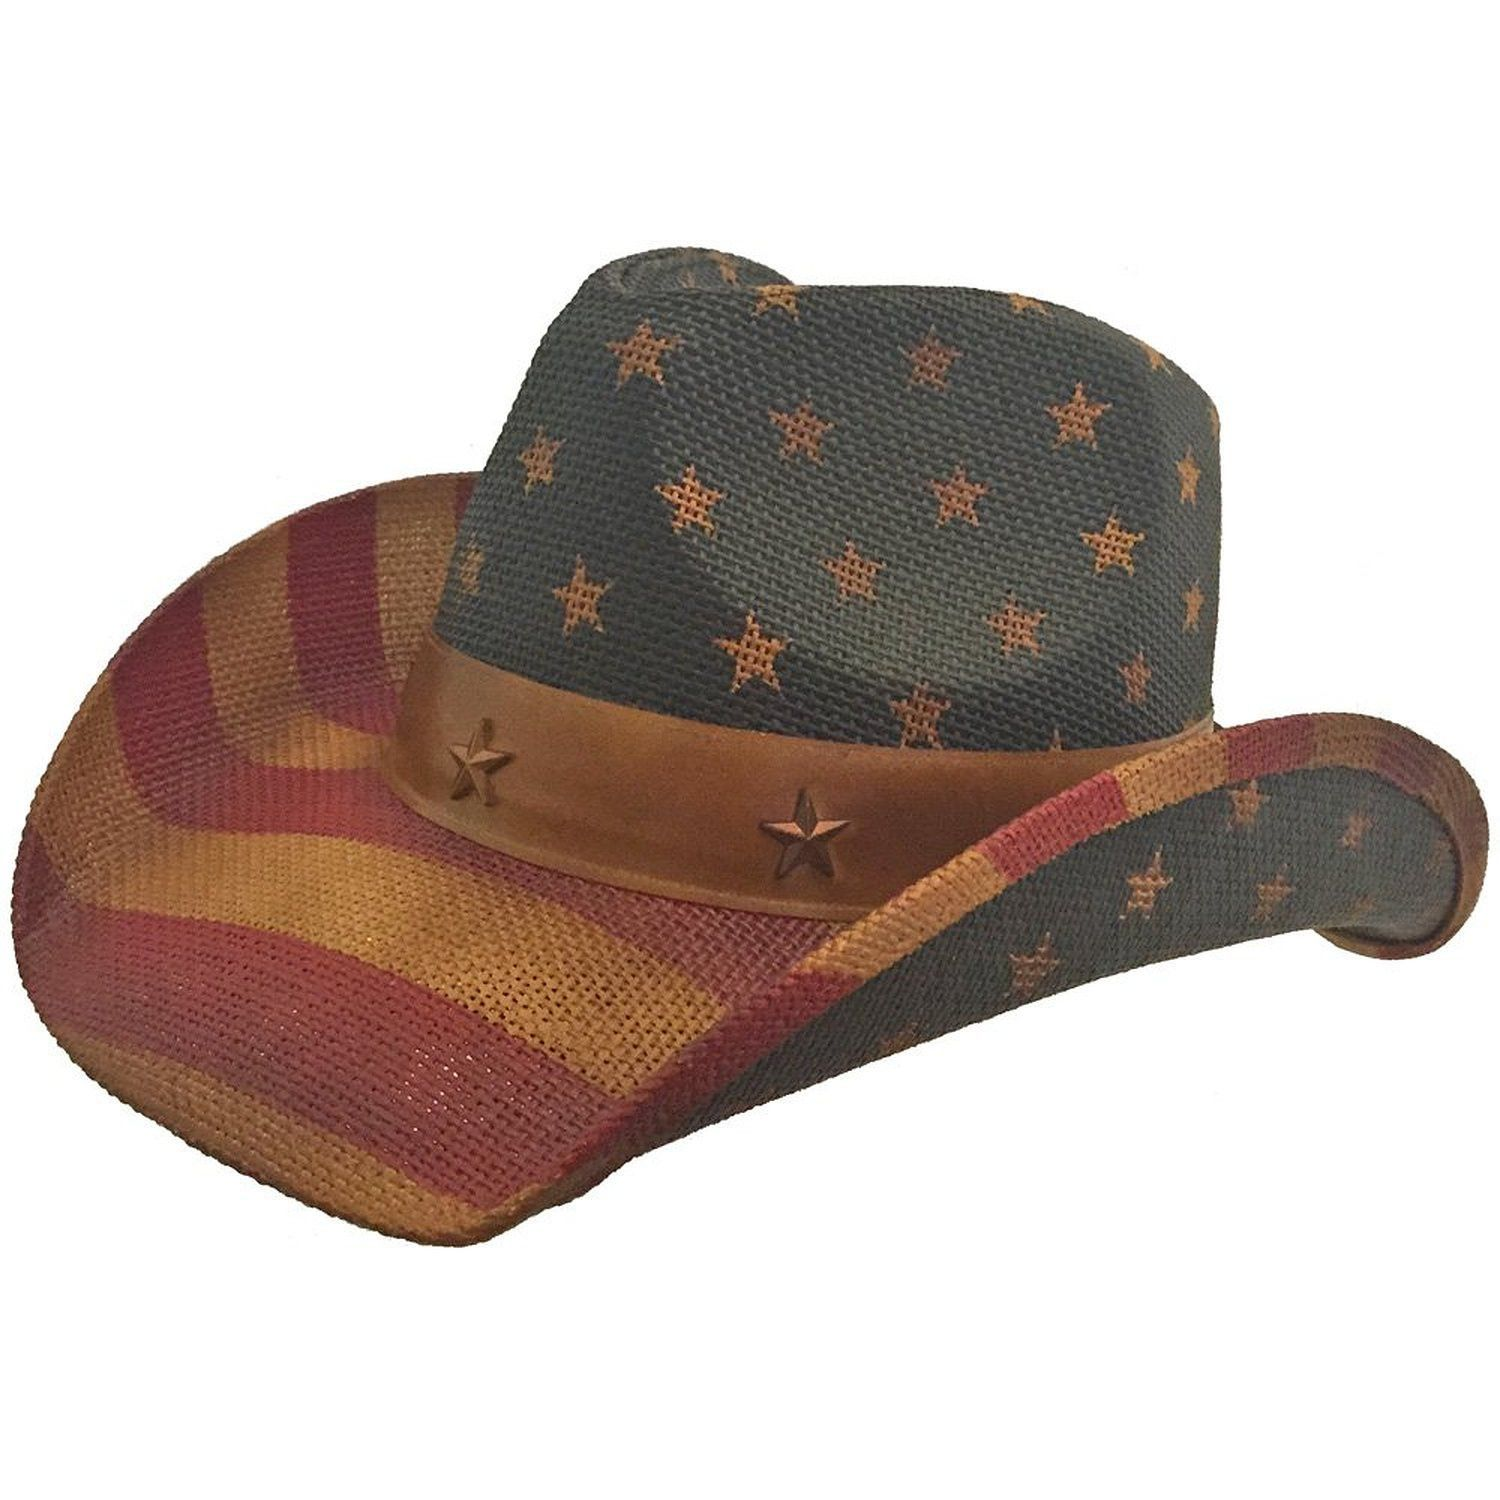 719729d590070e American Flag Country Distressed Tea Stain Star Cowboy Hat, Red White Blue  USA #americanflag #cowboyhat #usa #patriotic #flaghat #starsandstripes ...